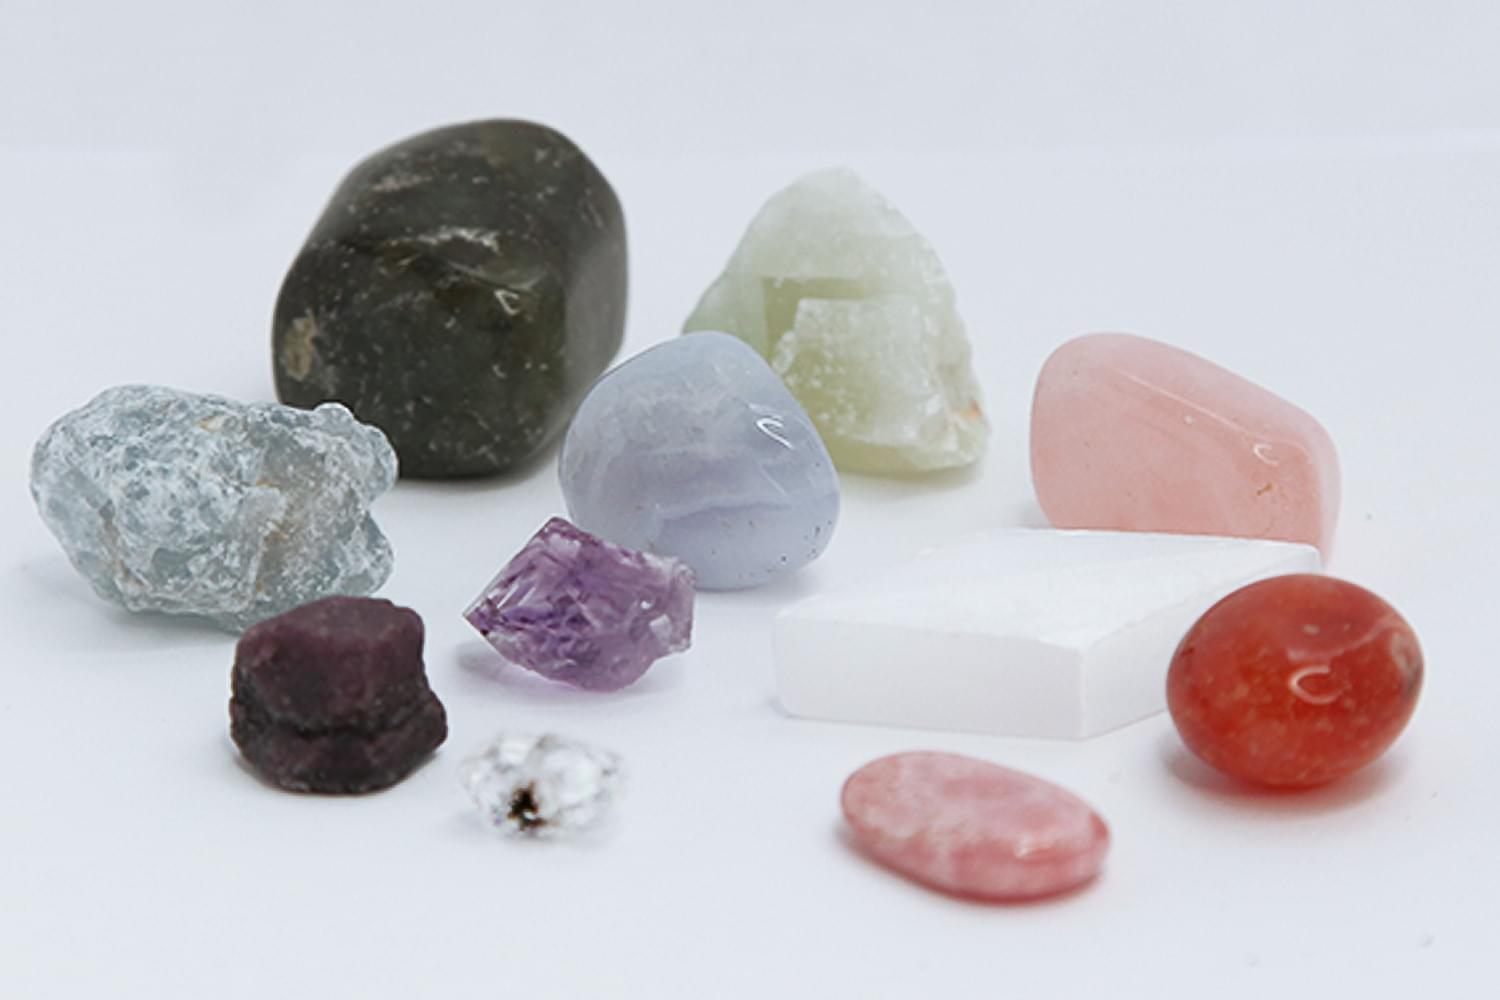 Connection_chakra_crystal_kit_garnet_diamond_amethyst_carnelian_quartz_selenite.min